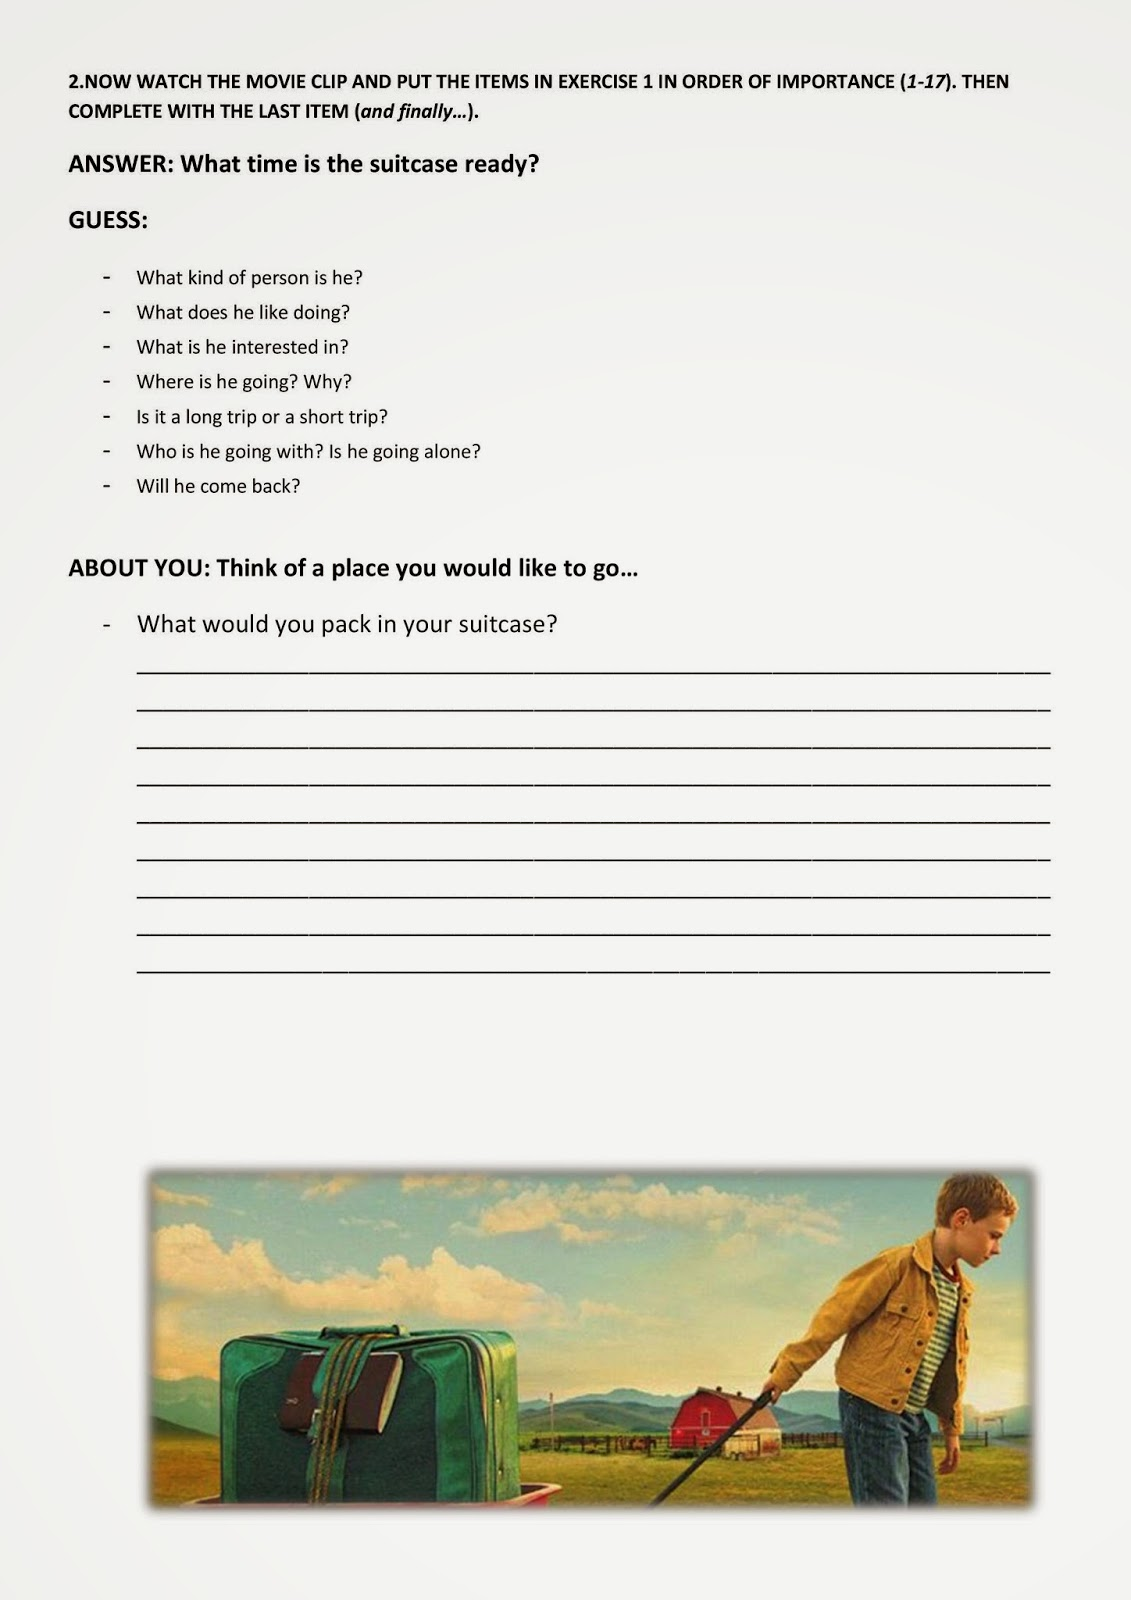 Movie Segments To Assess Grammar Goals The Young And Prodigious T S Spivet Preposition In X On